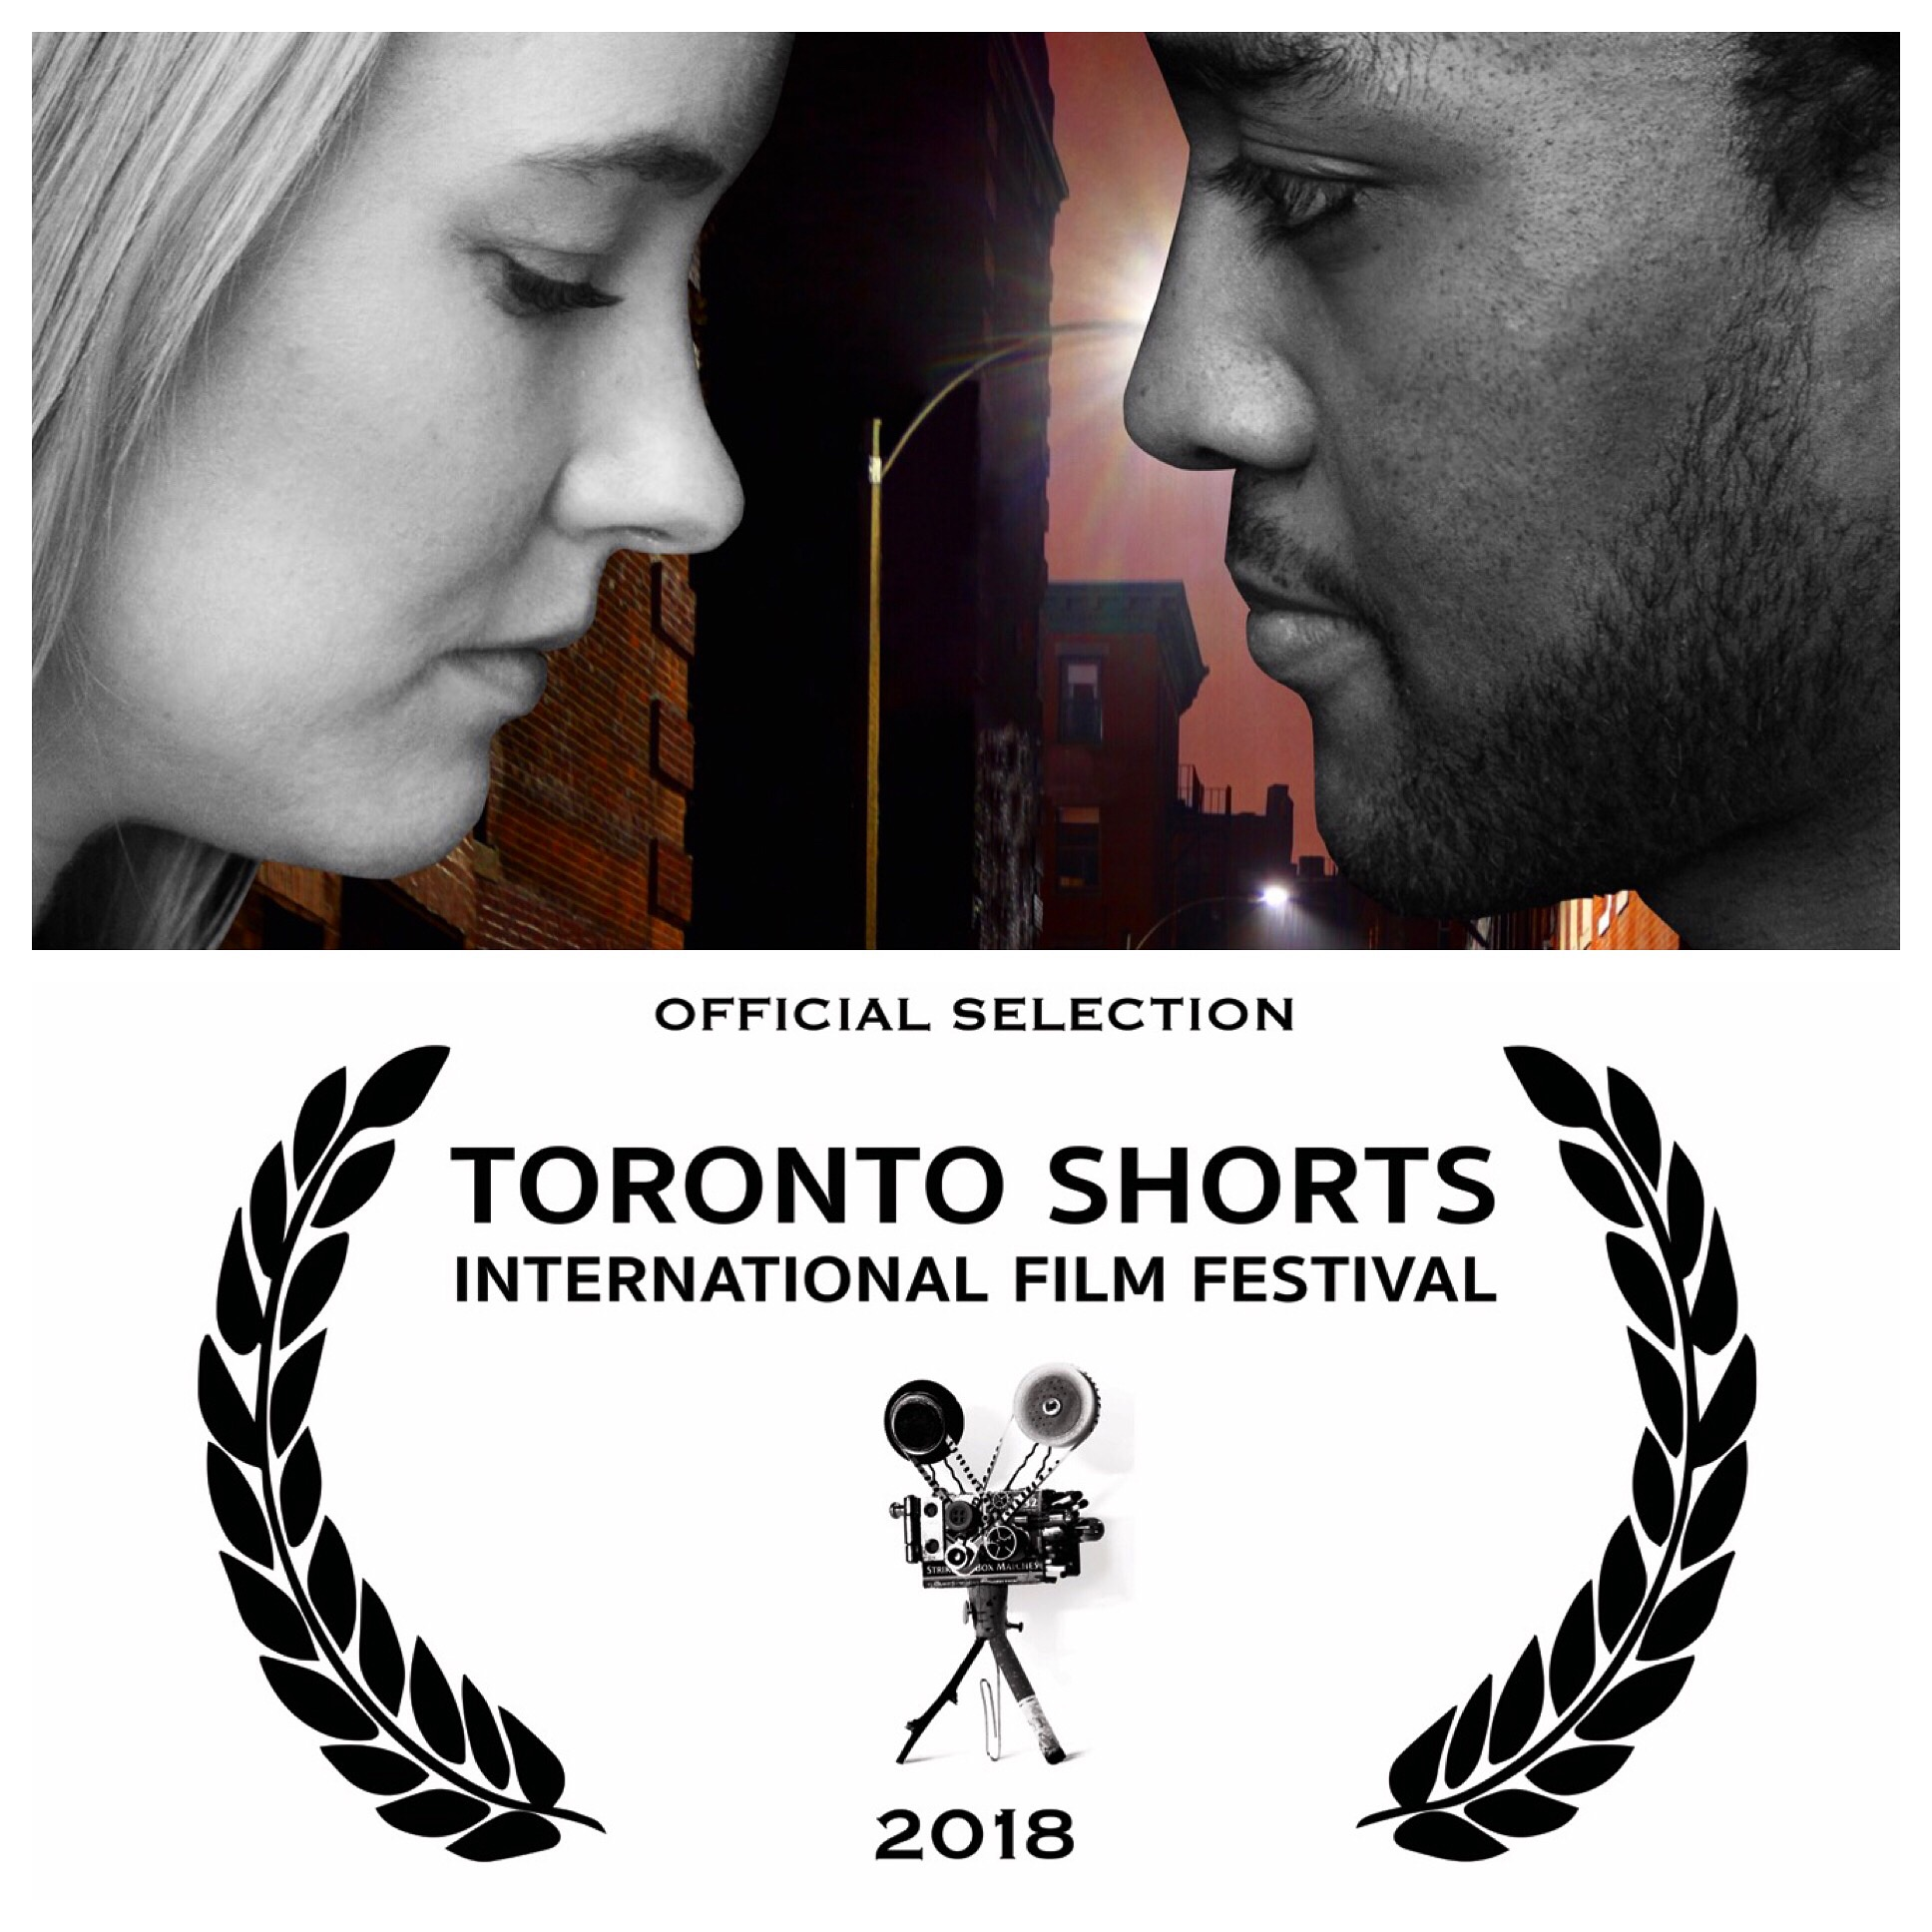 Join us Friday March 2nd at 9pm for the Canadian Premiere of RIVE at the Art Gallery of Ontario, Jackman Hall, 317 Dundas St W.TorontoShorts.com -